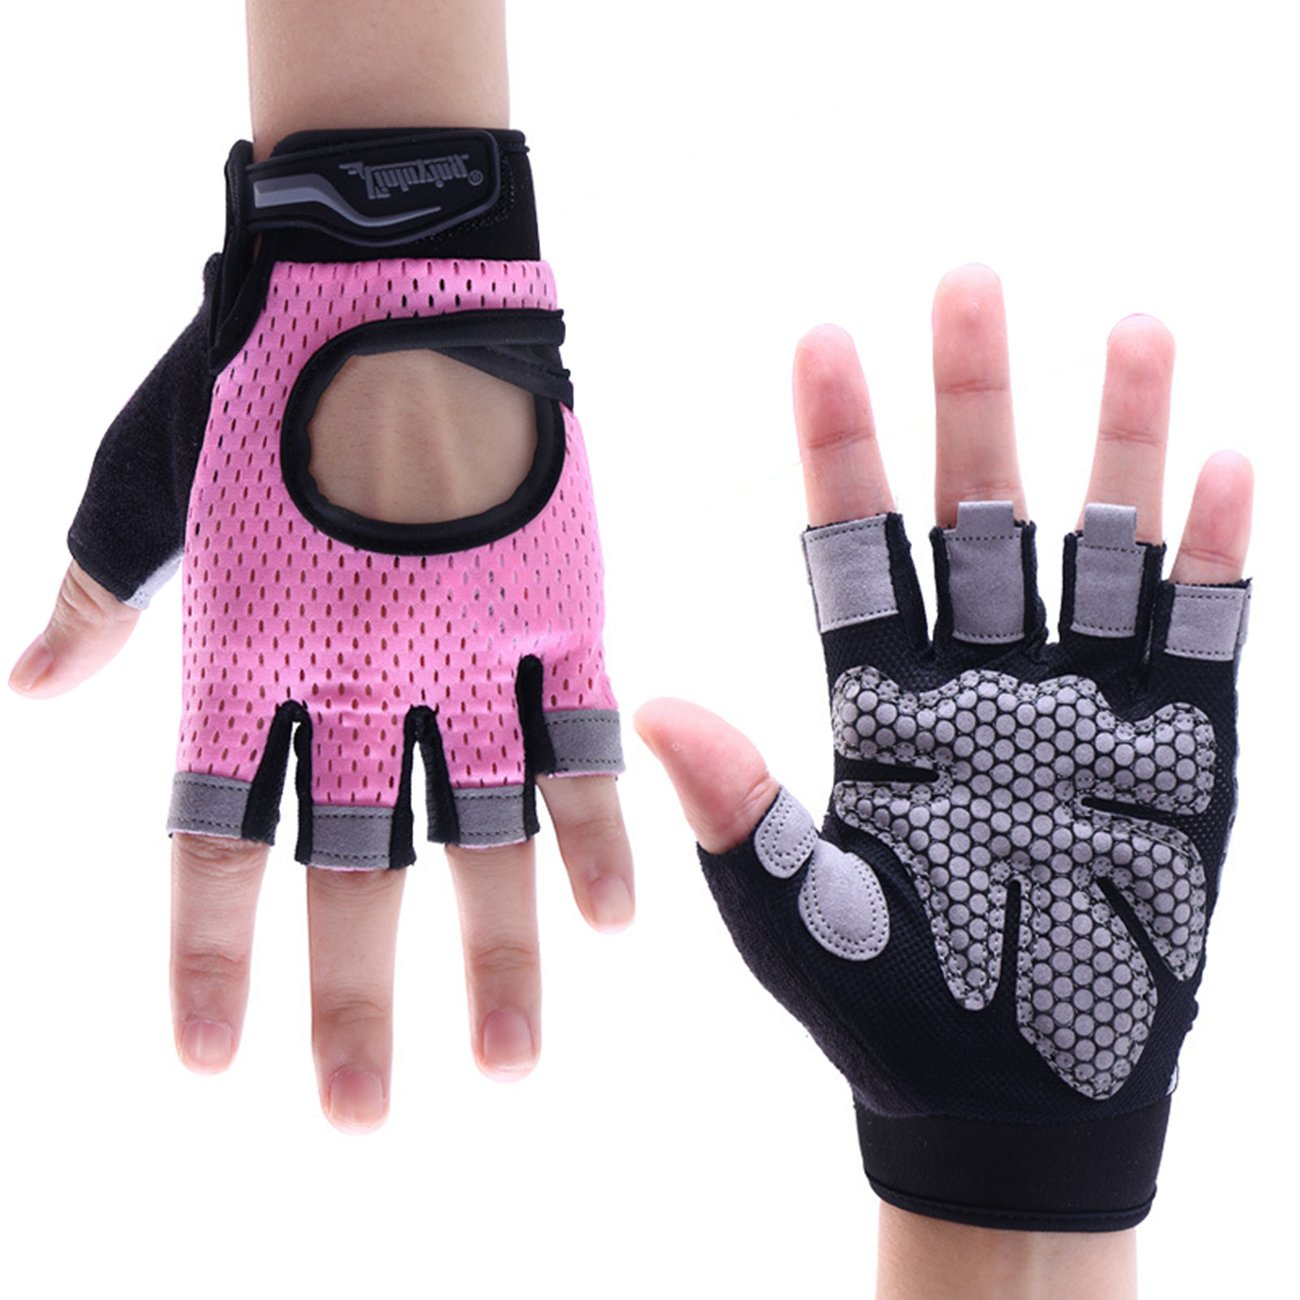 ORVR Outdoor Fingerless Military Tactical Gloves for Airsoft Hunting Riding Game